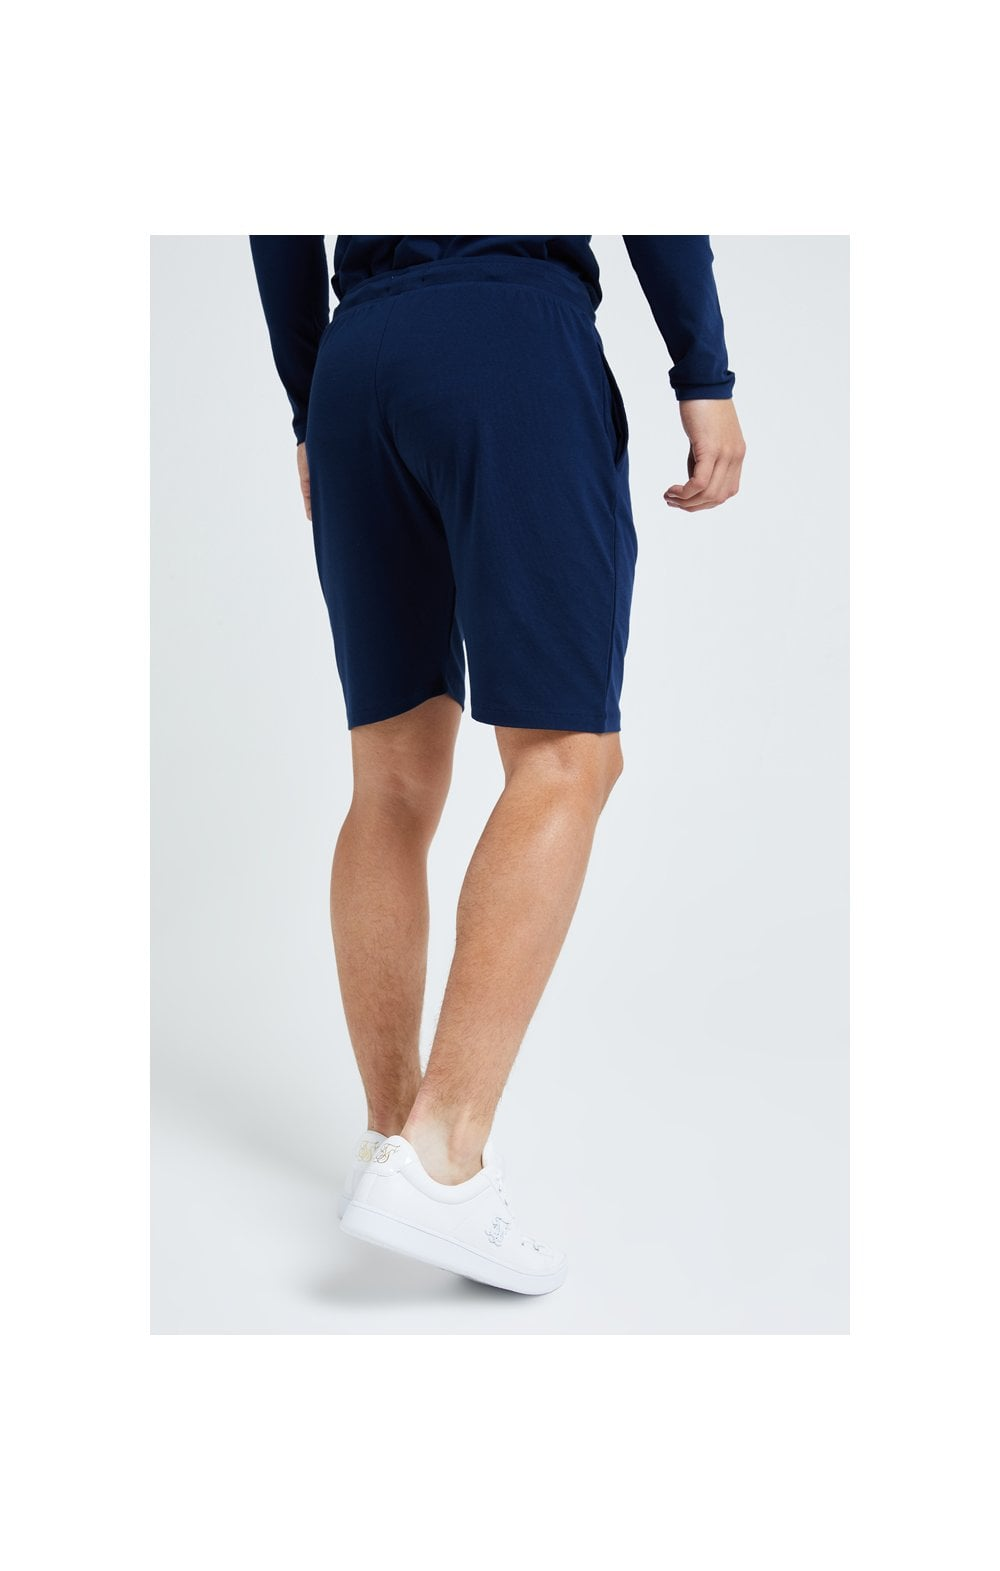 Illusive London Core Jersey Shorts - Navy (4)